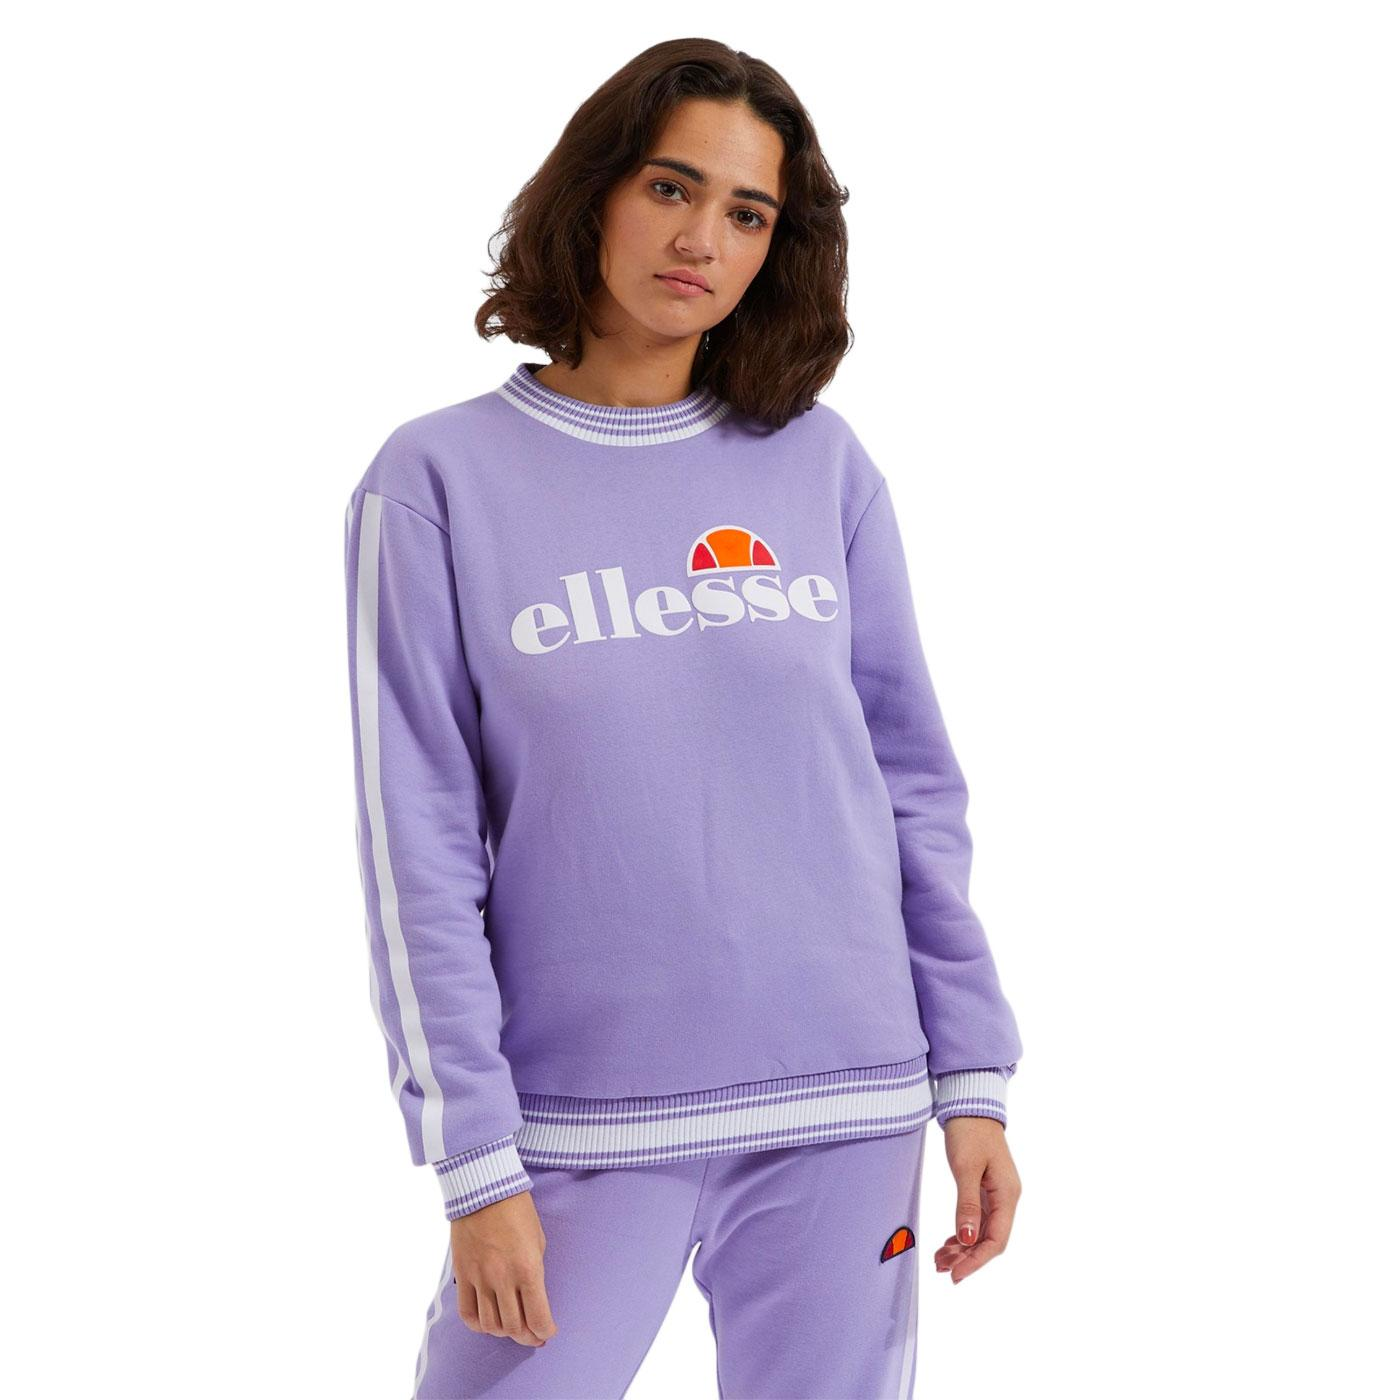 Susana ELLESSE Women's Retro 90s Sweatshirt PURPLE